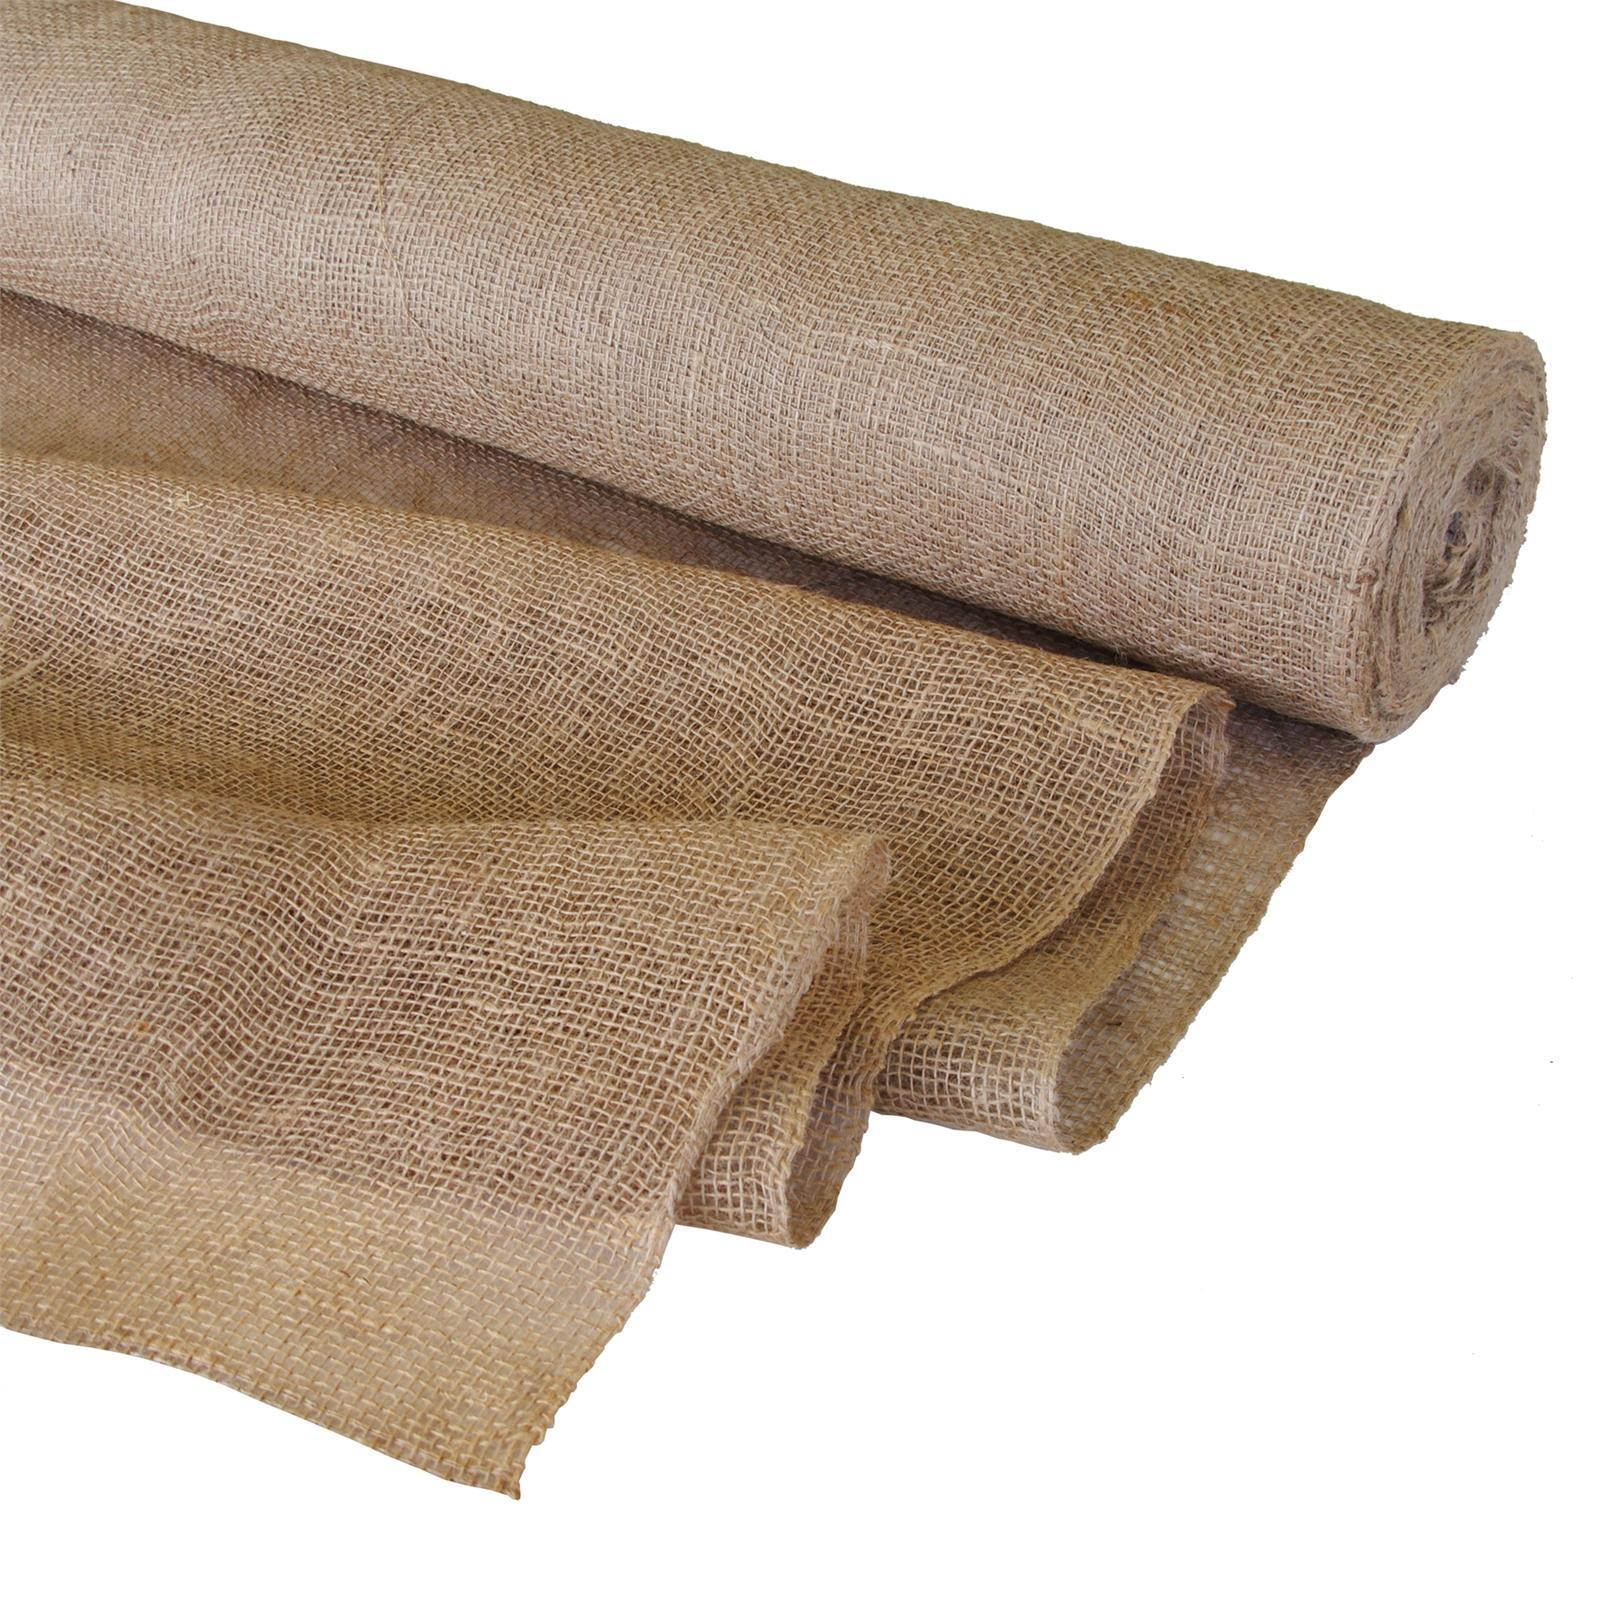 Pillar Products 1.8 x 50m Prepacked Natural Hessian